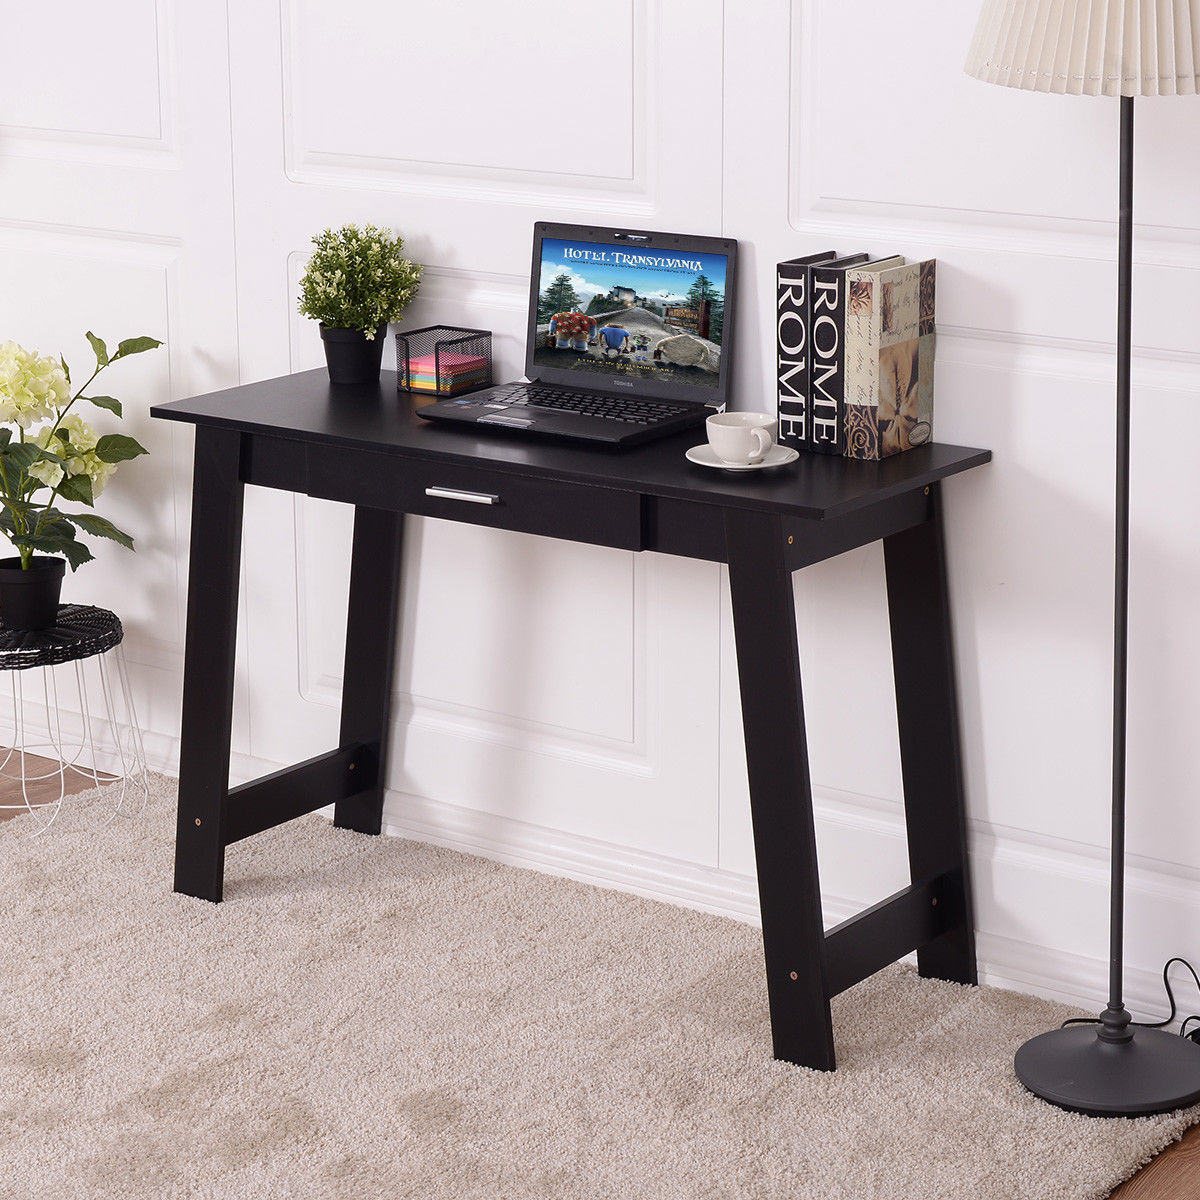 Costway Beginnings Writing Table Writing Desk Workstation W/Drawer Home Office Furniture